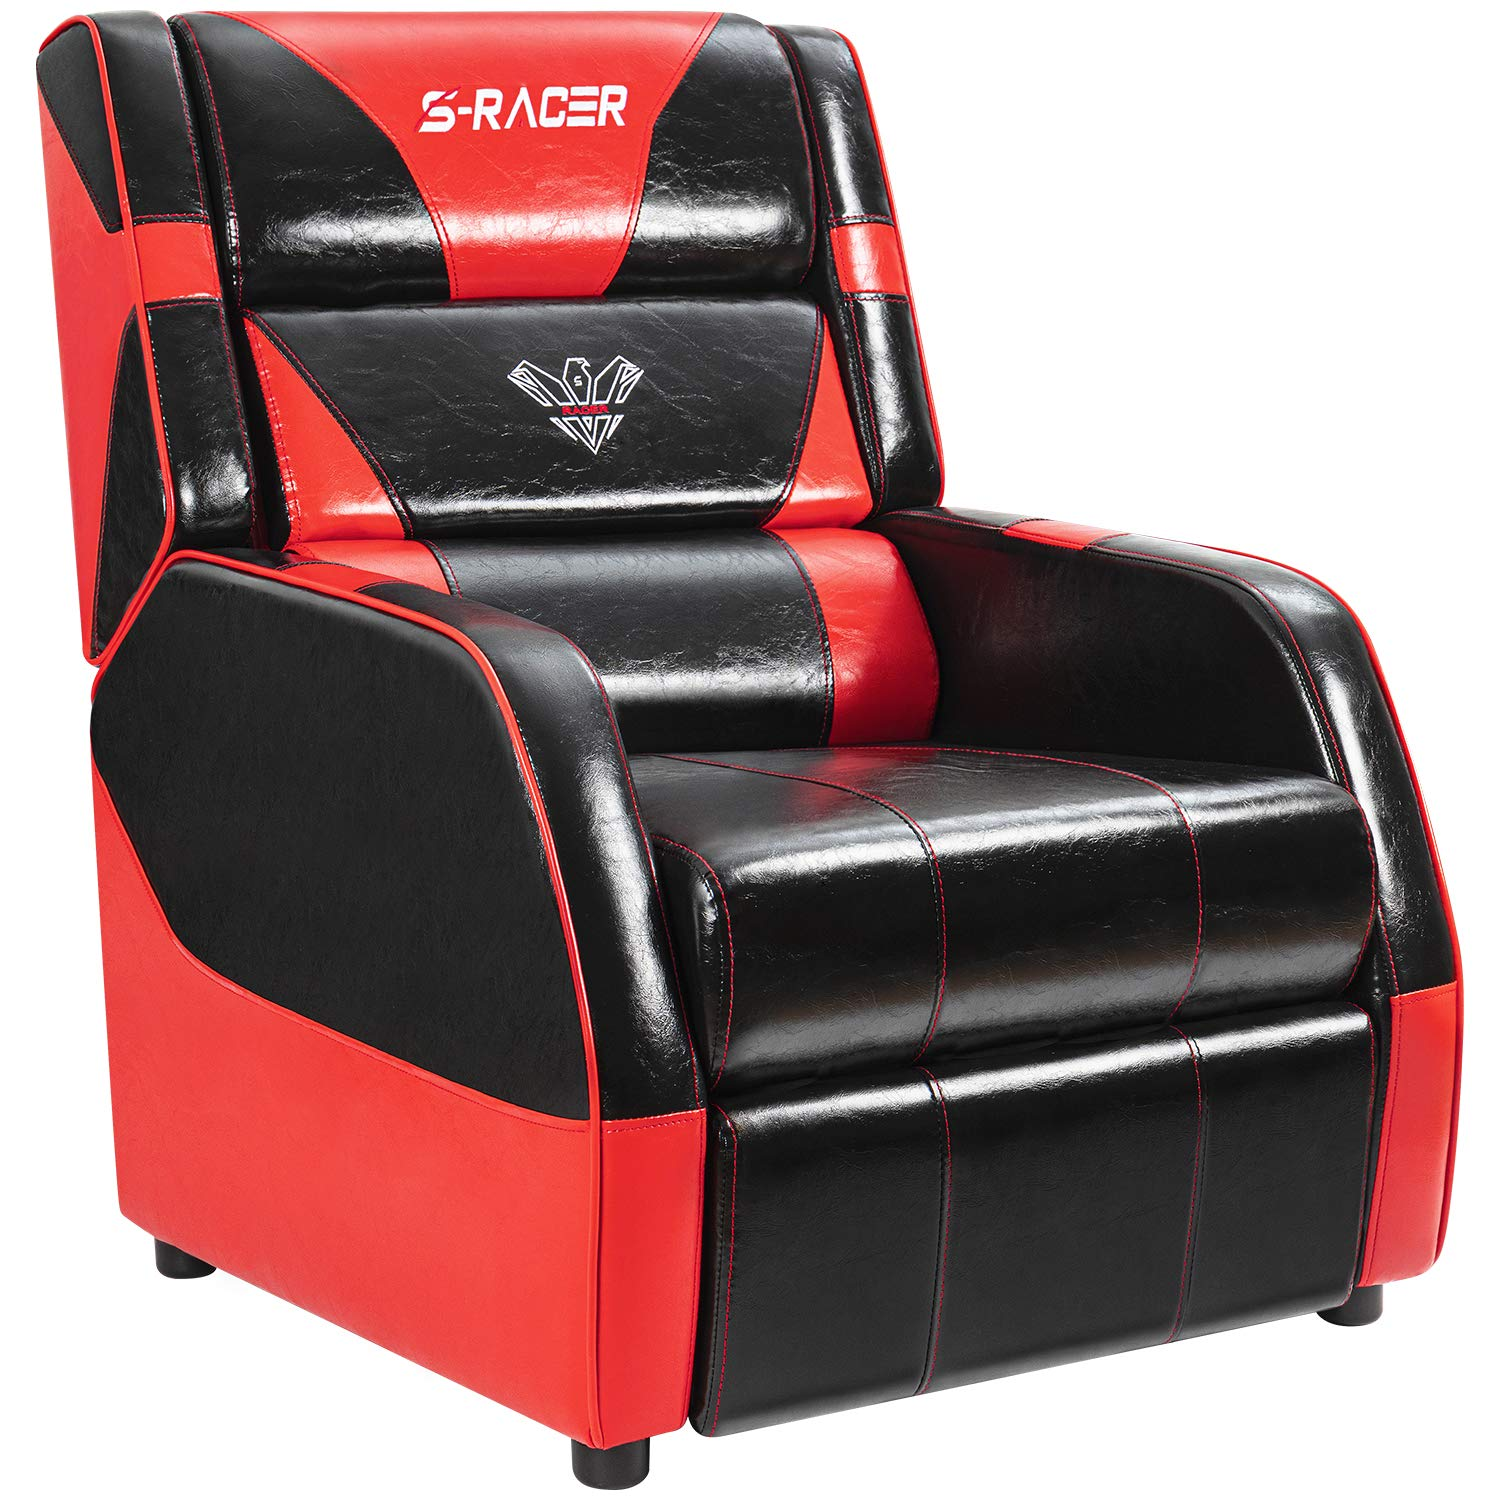 Gaming Recliner Chair Living Room Sofa Single Recliner PU Leather Recliner Seat Home Theater Seating with Removable Cushions Sracer Red